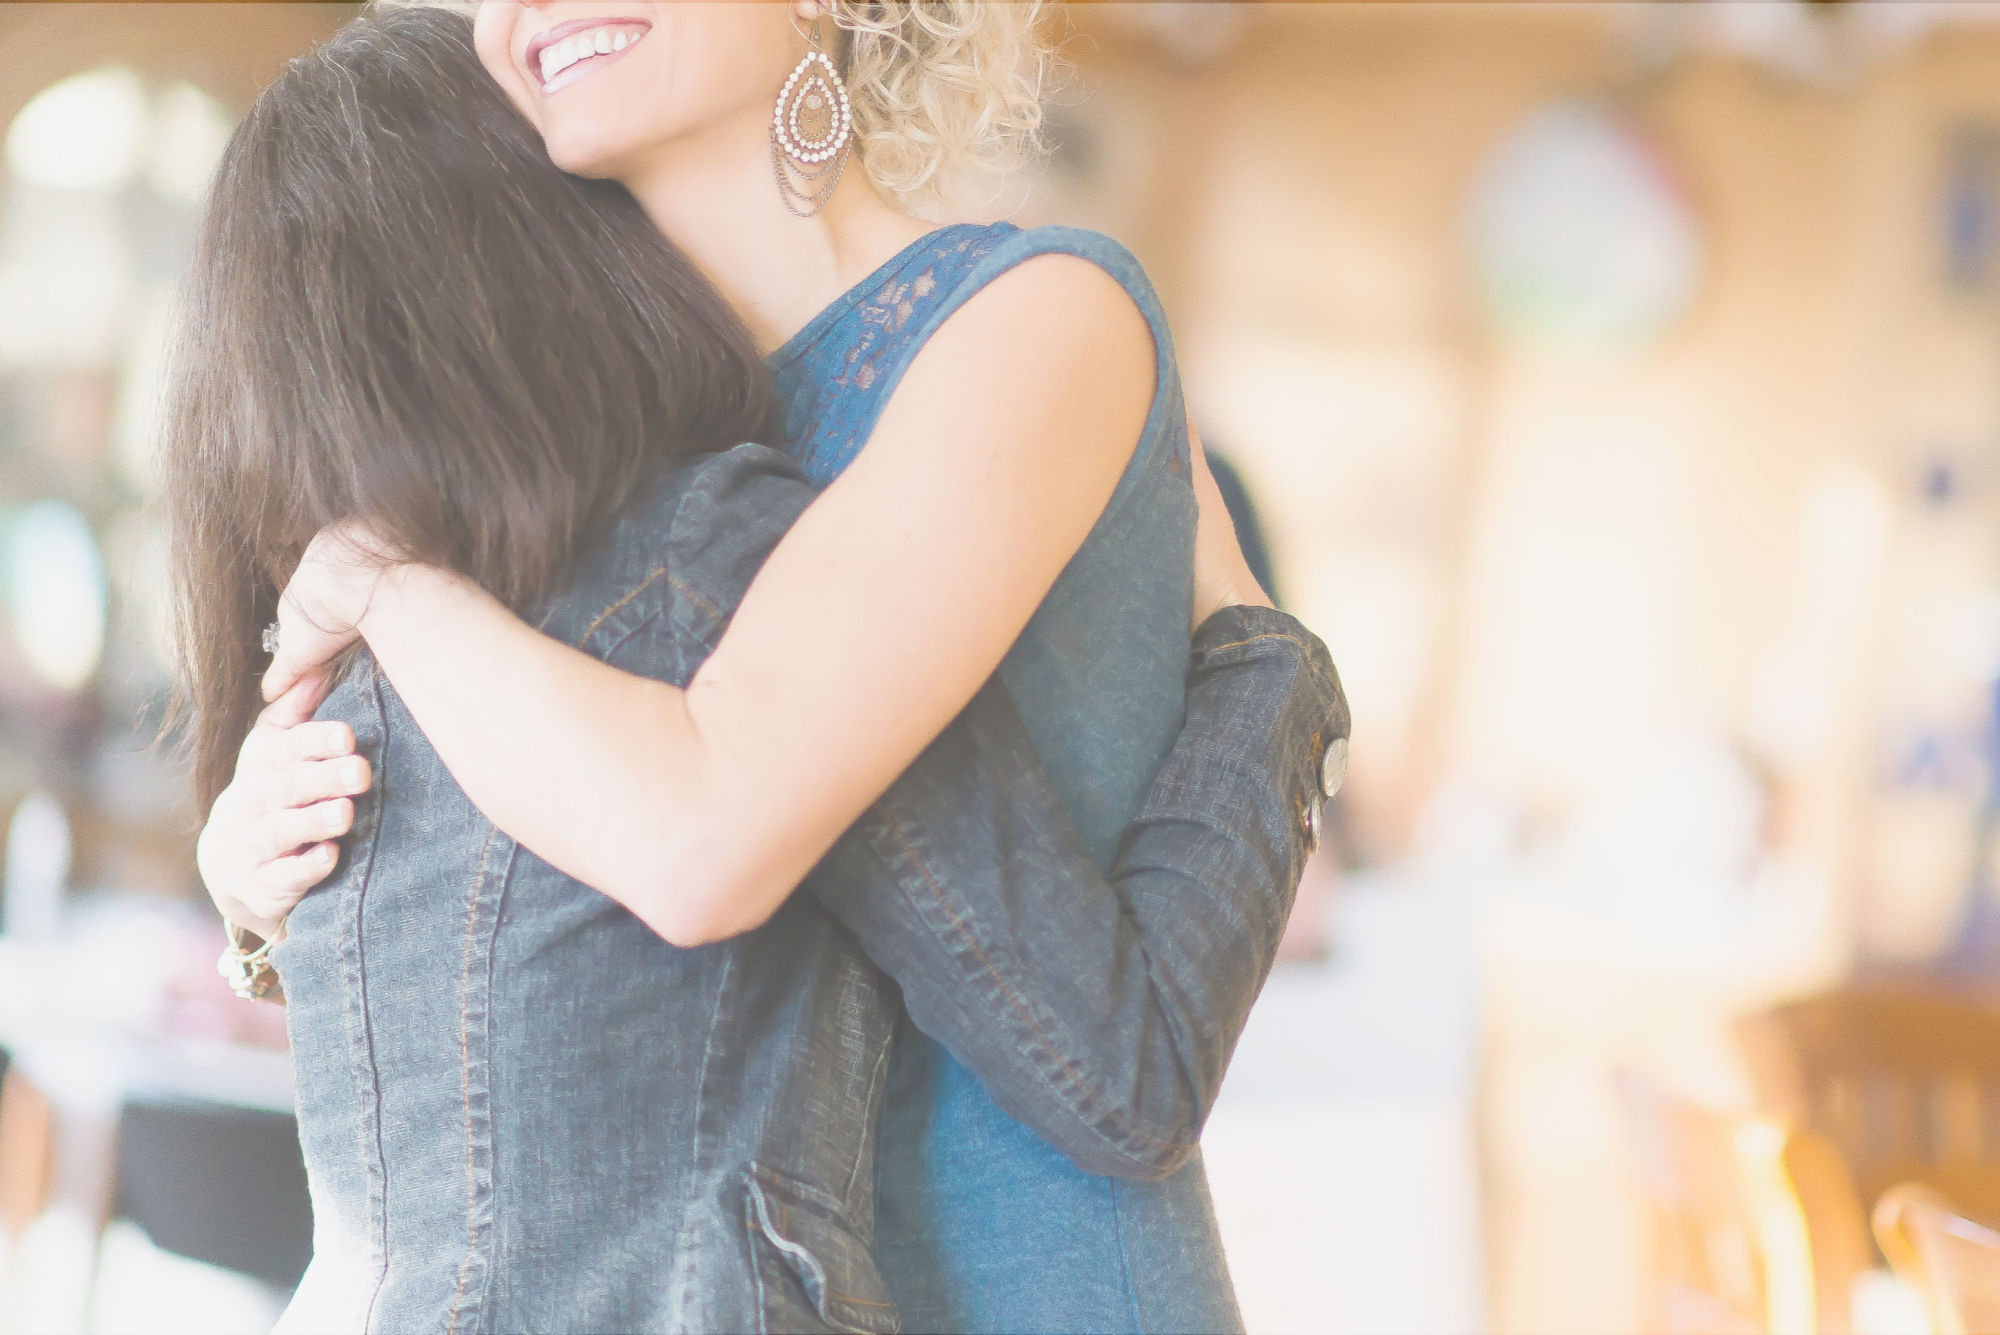 Women hugging - order your life to love well